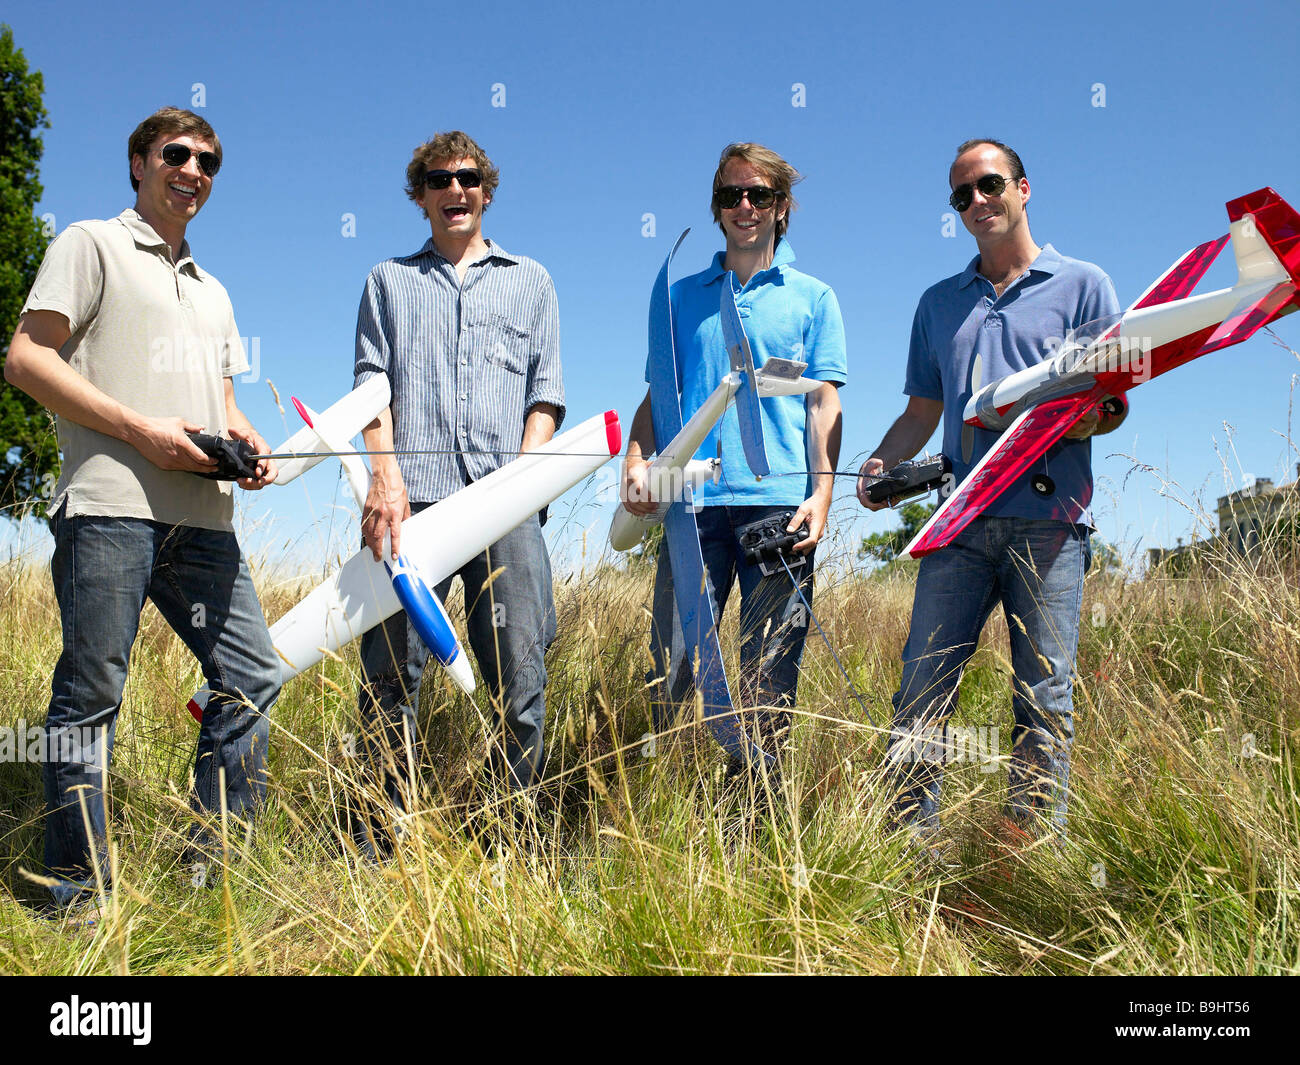 Men with remote-controlled plane - Stock Image